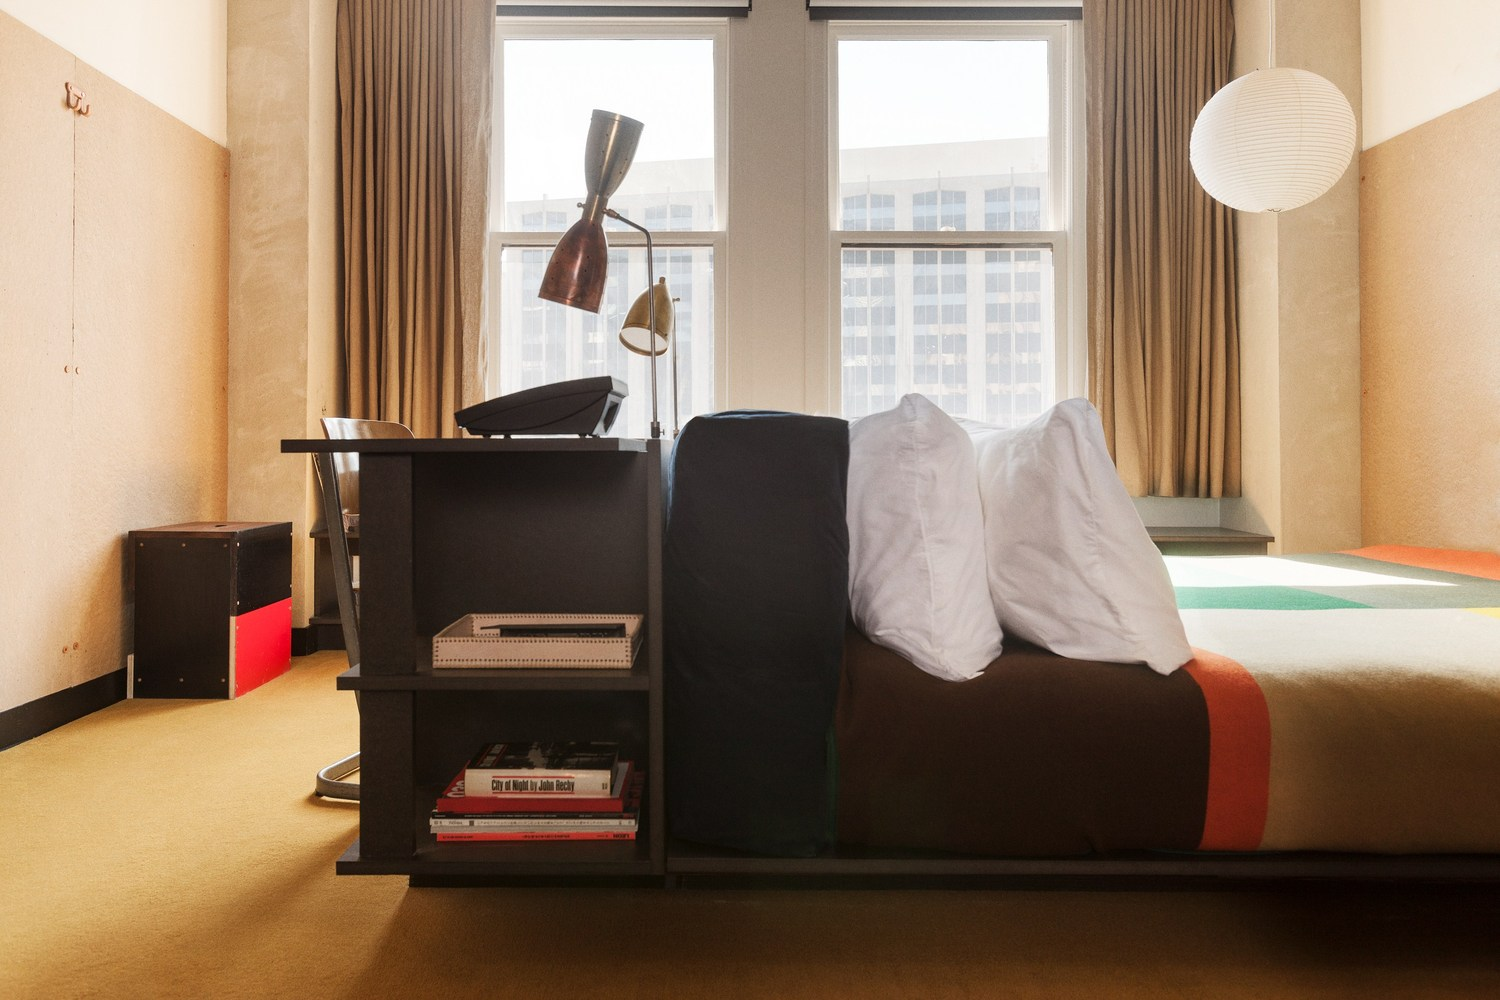 Ace_Hotel_Downtown_LA_-_Model_Room_-_Photo_by_Spencer_Lowell_-_010